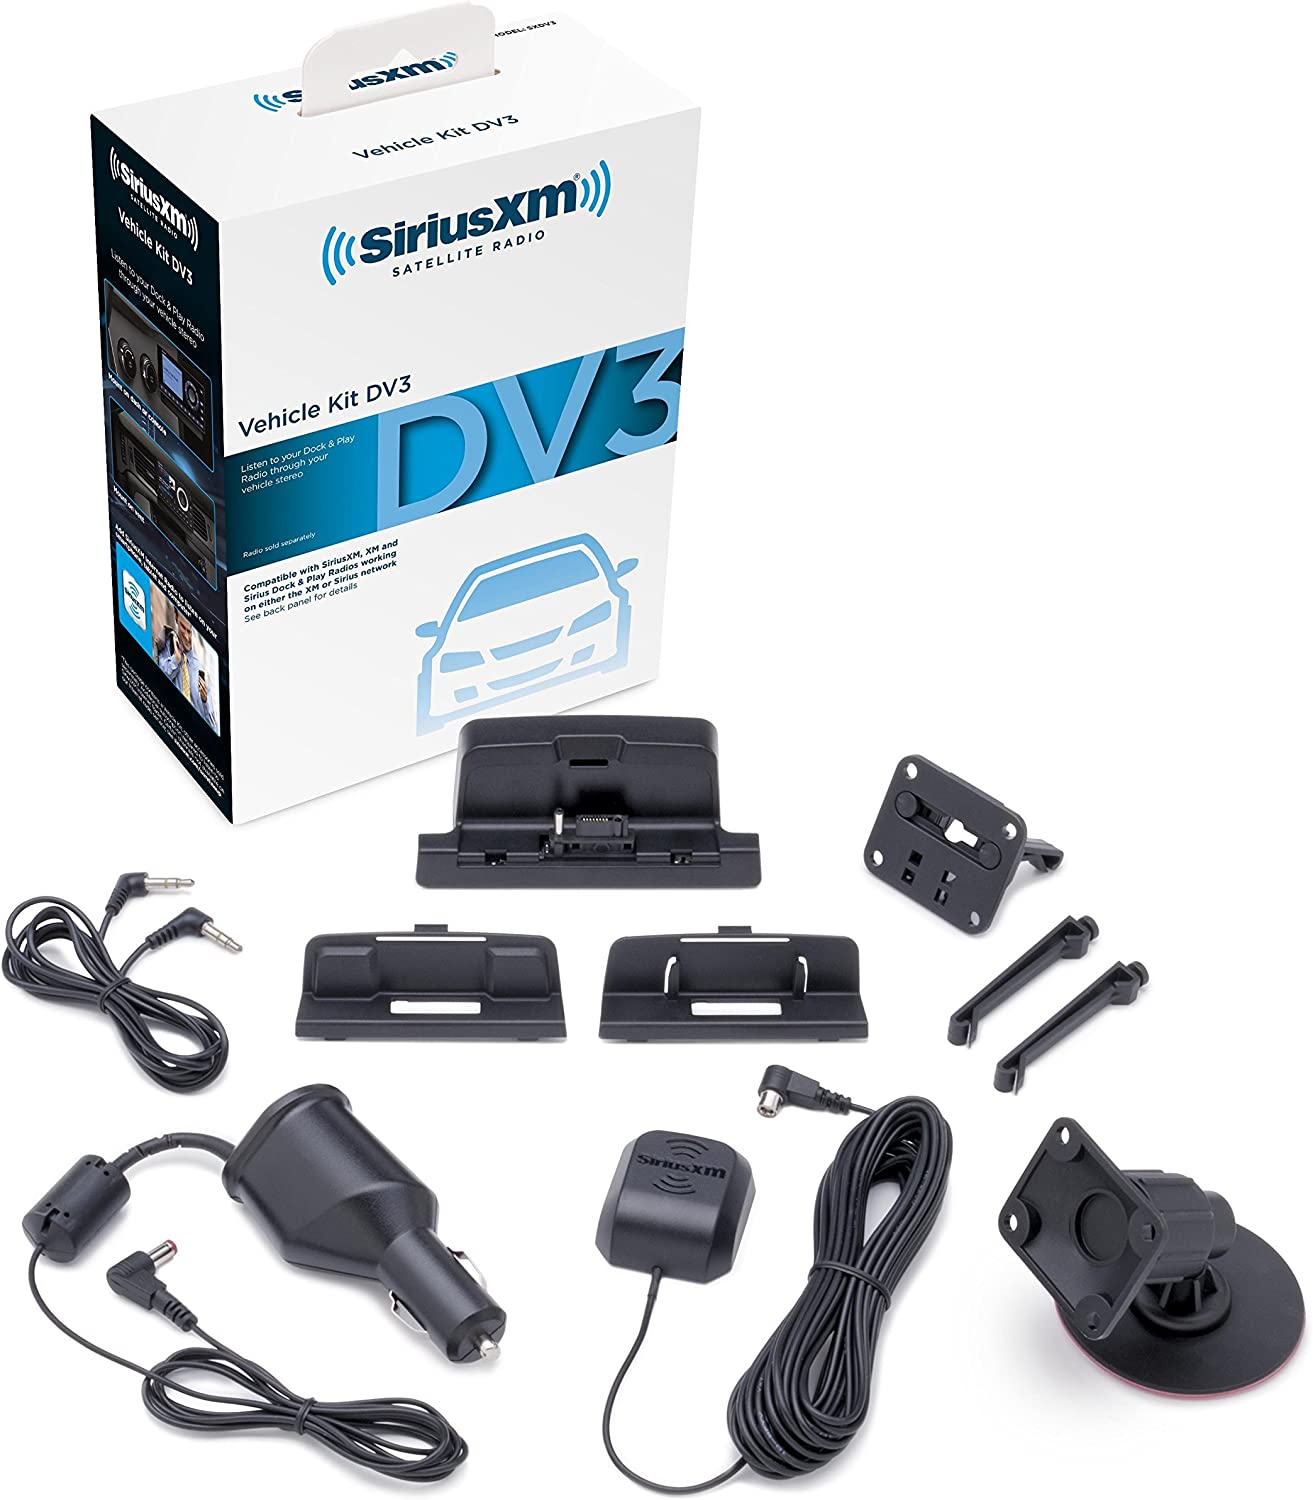 SiriusXM SXDV3 Satellite Radio Vehicle Mounting Kit with Dock and Charging Cable (Black) (Renewed)